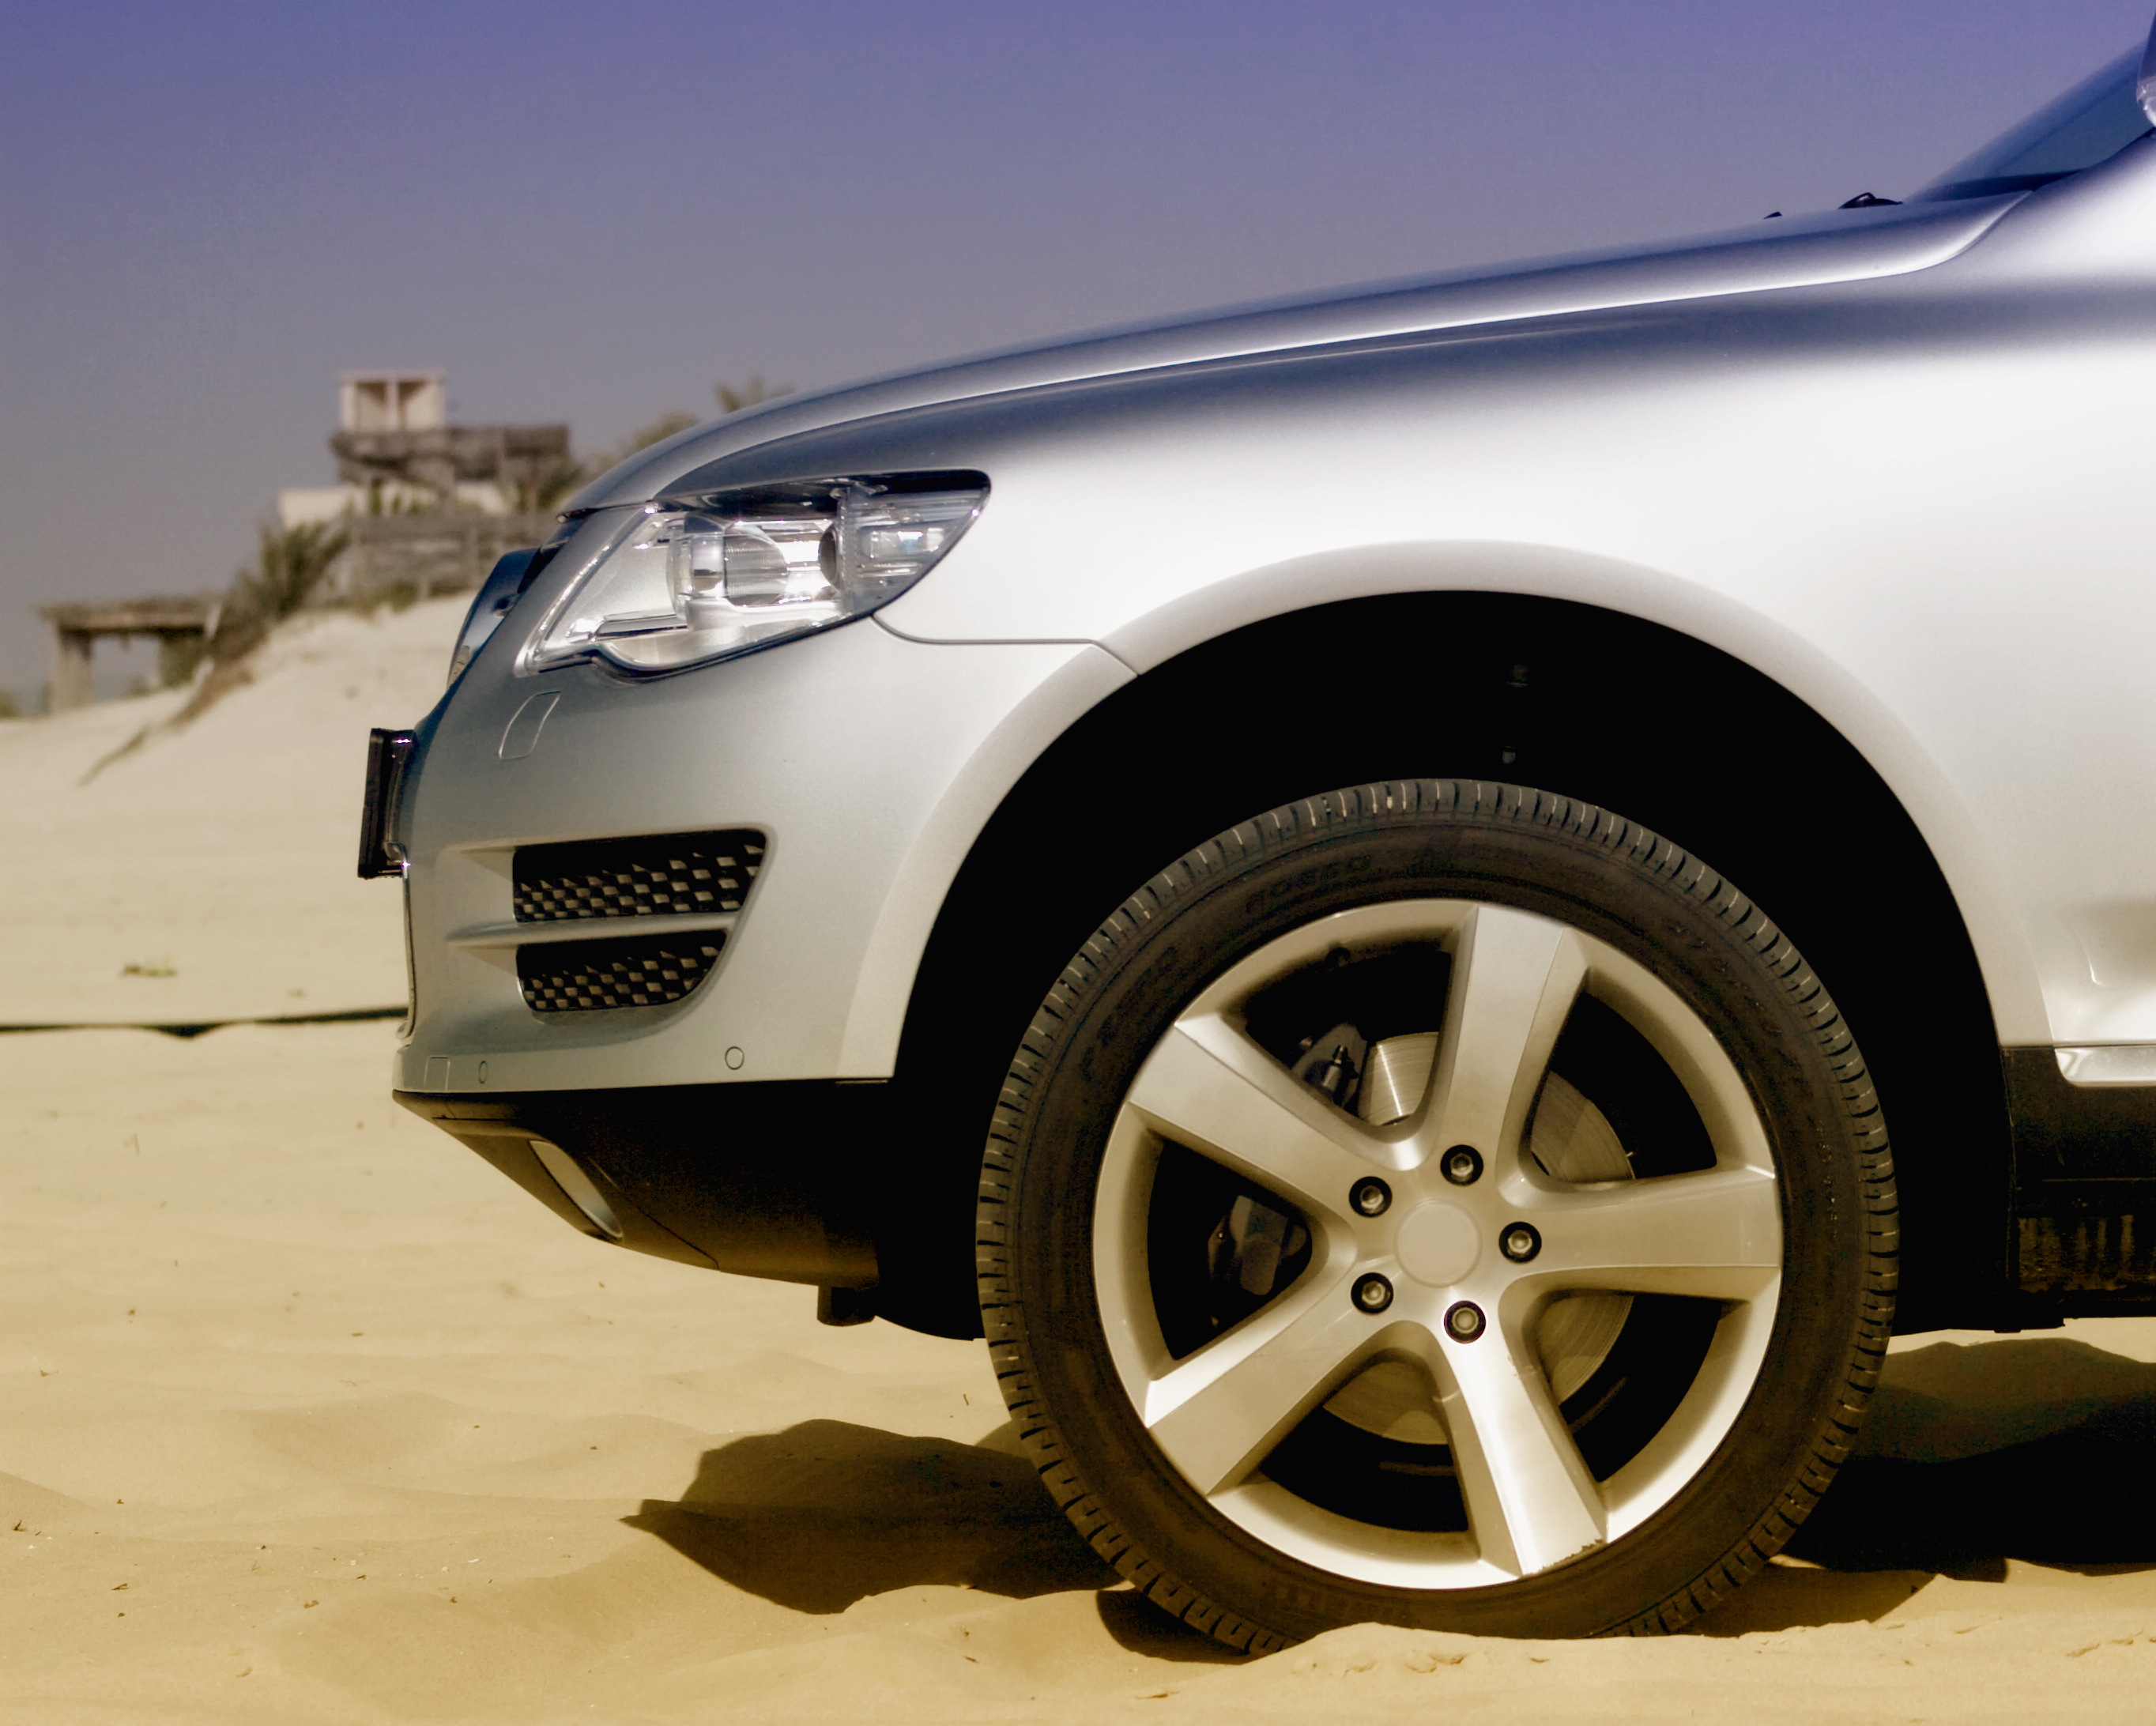 Wrightdrive - Used cars for sale / Car Repairs in Mallorca. Online ...